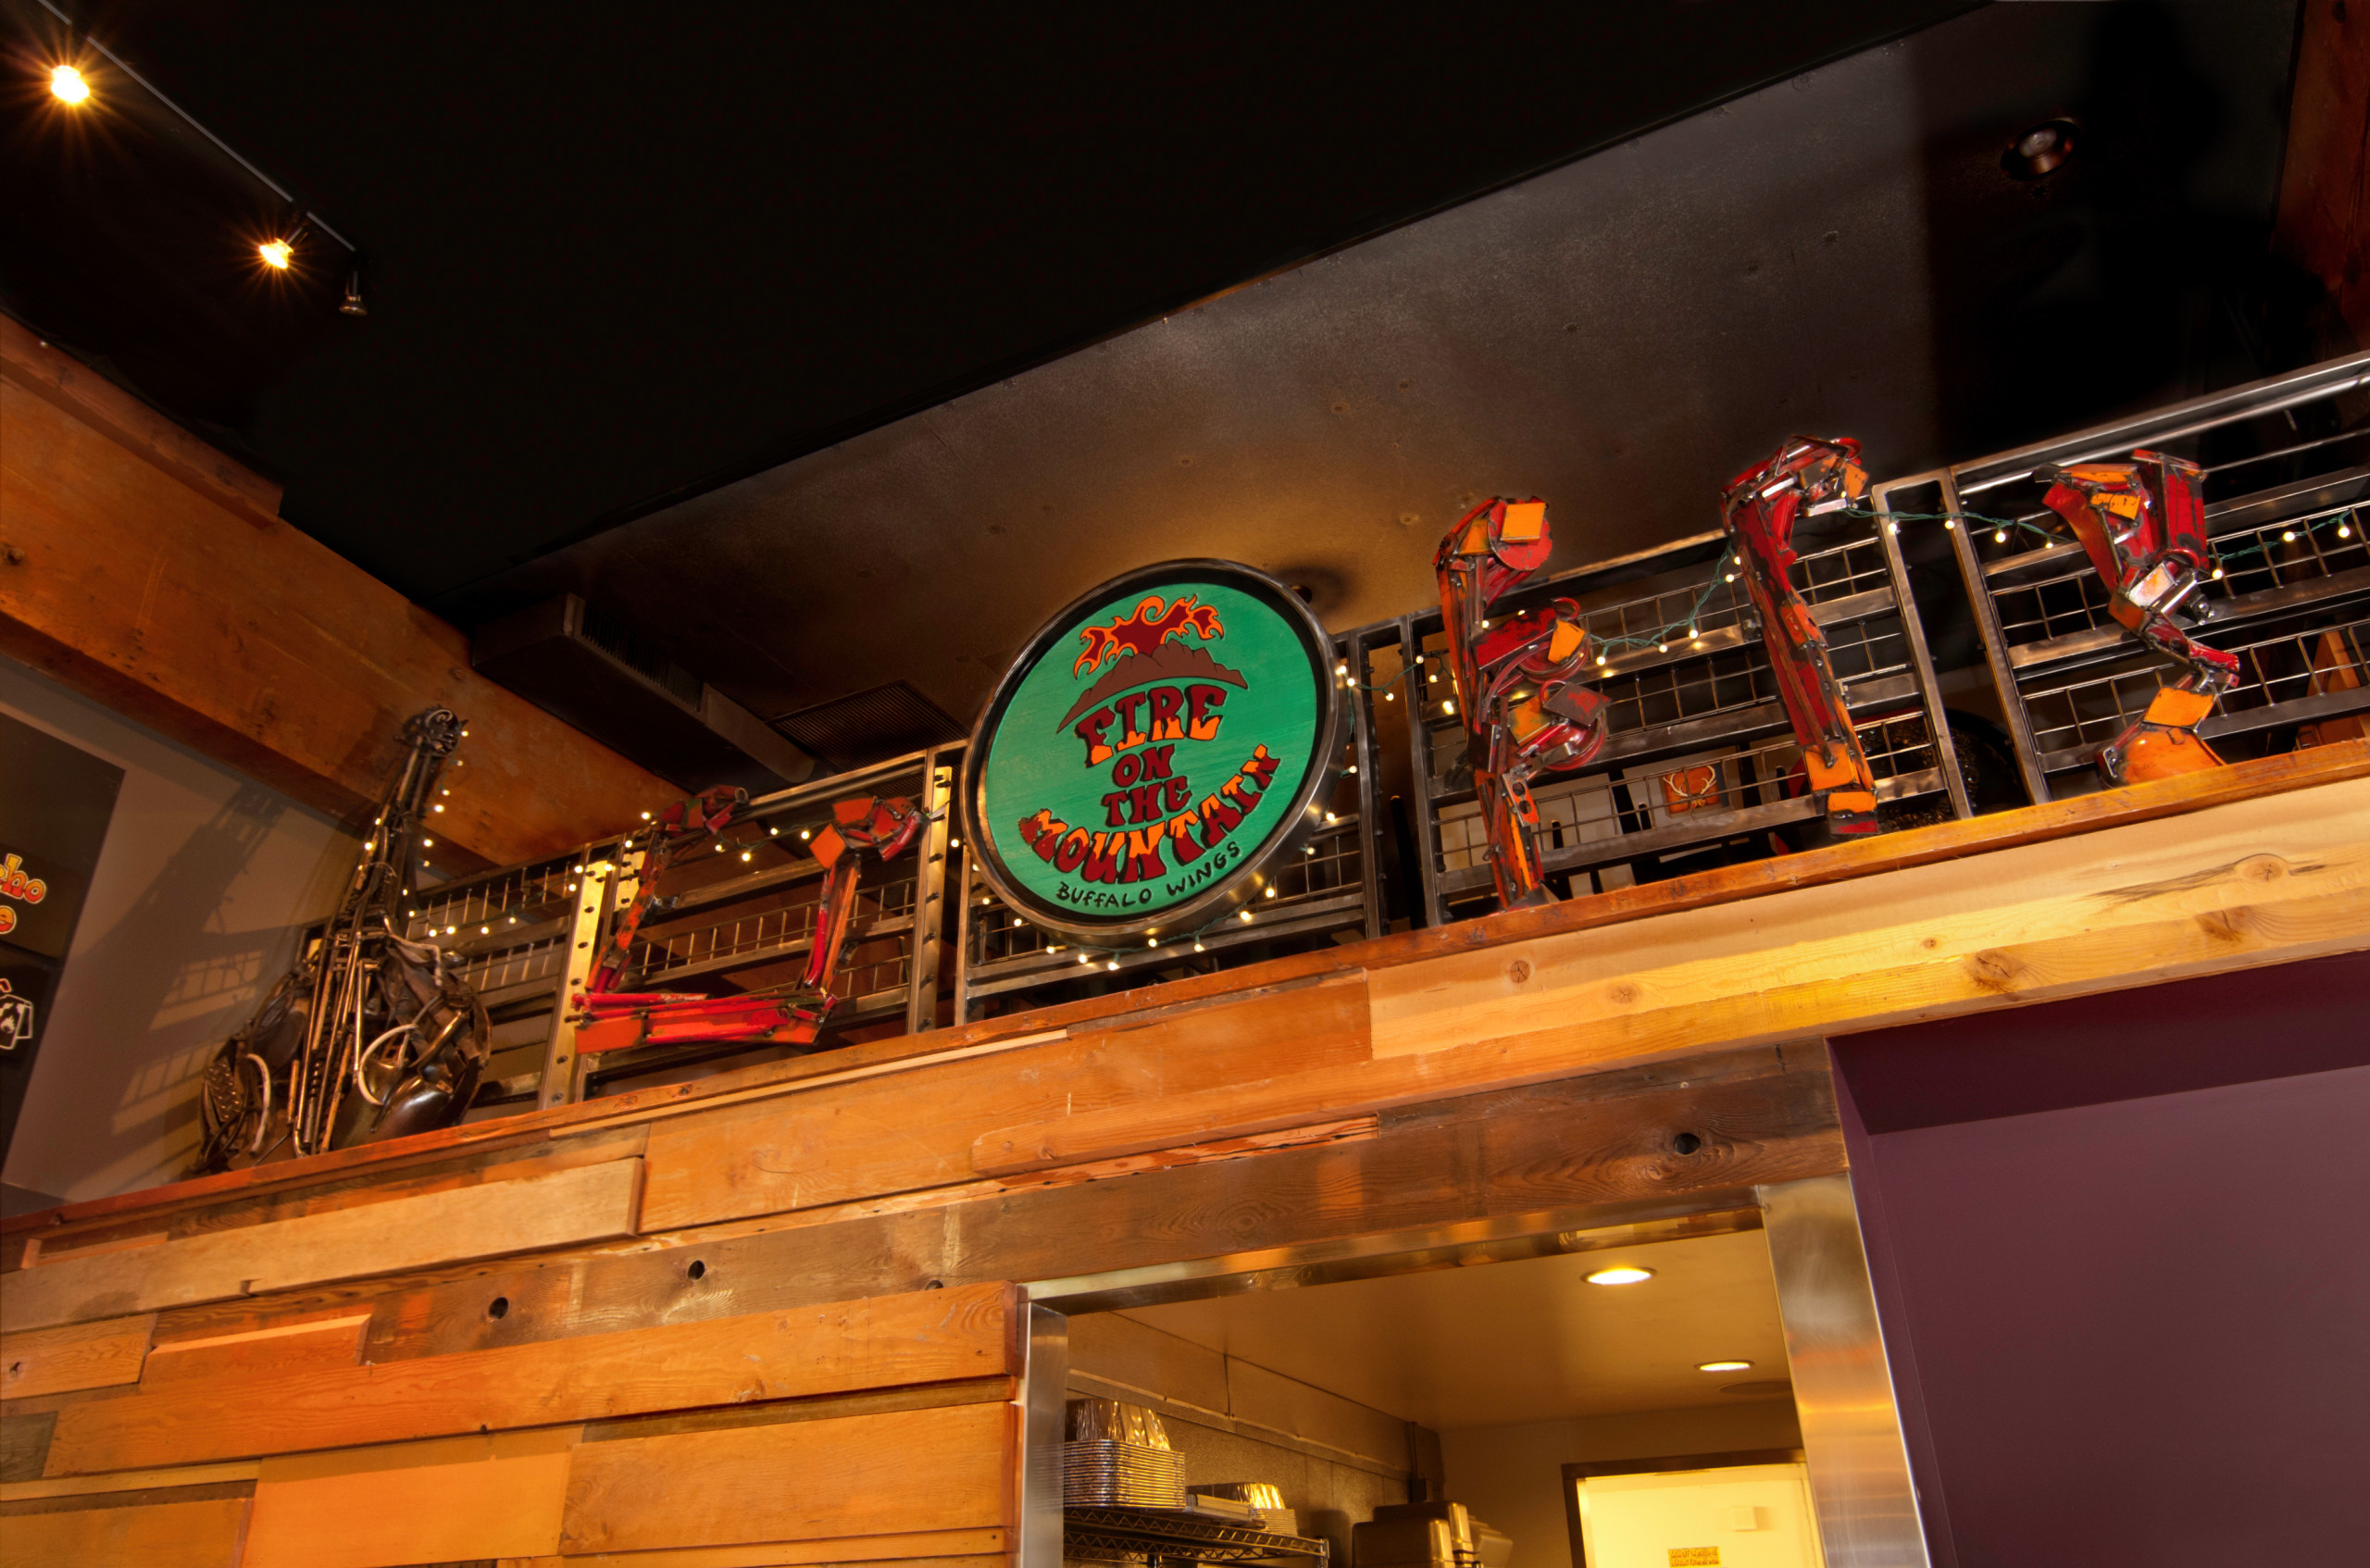 Fire on The Mountain Brewery & Restaurant